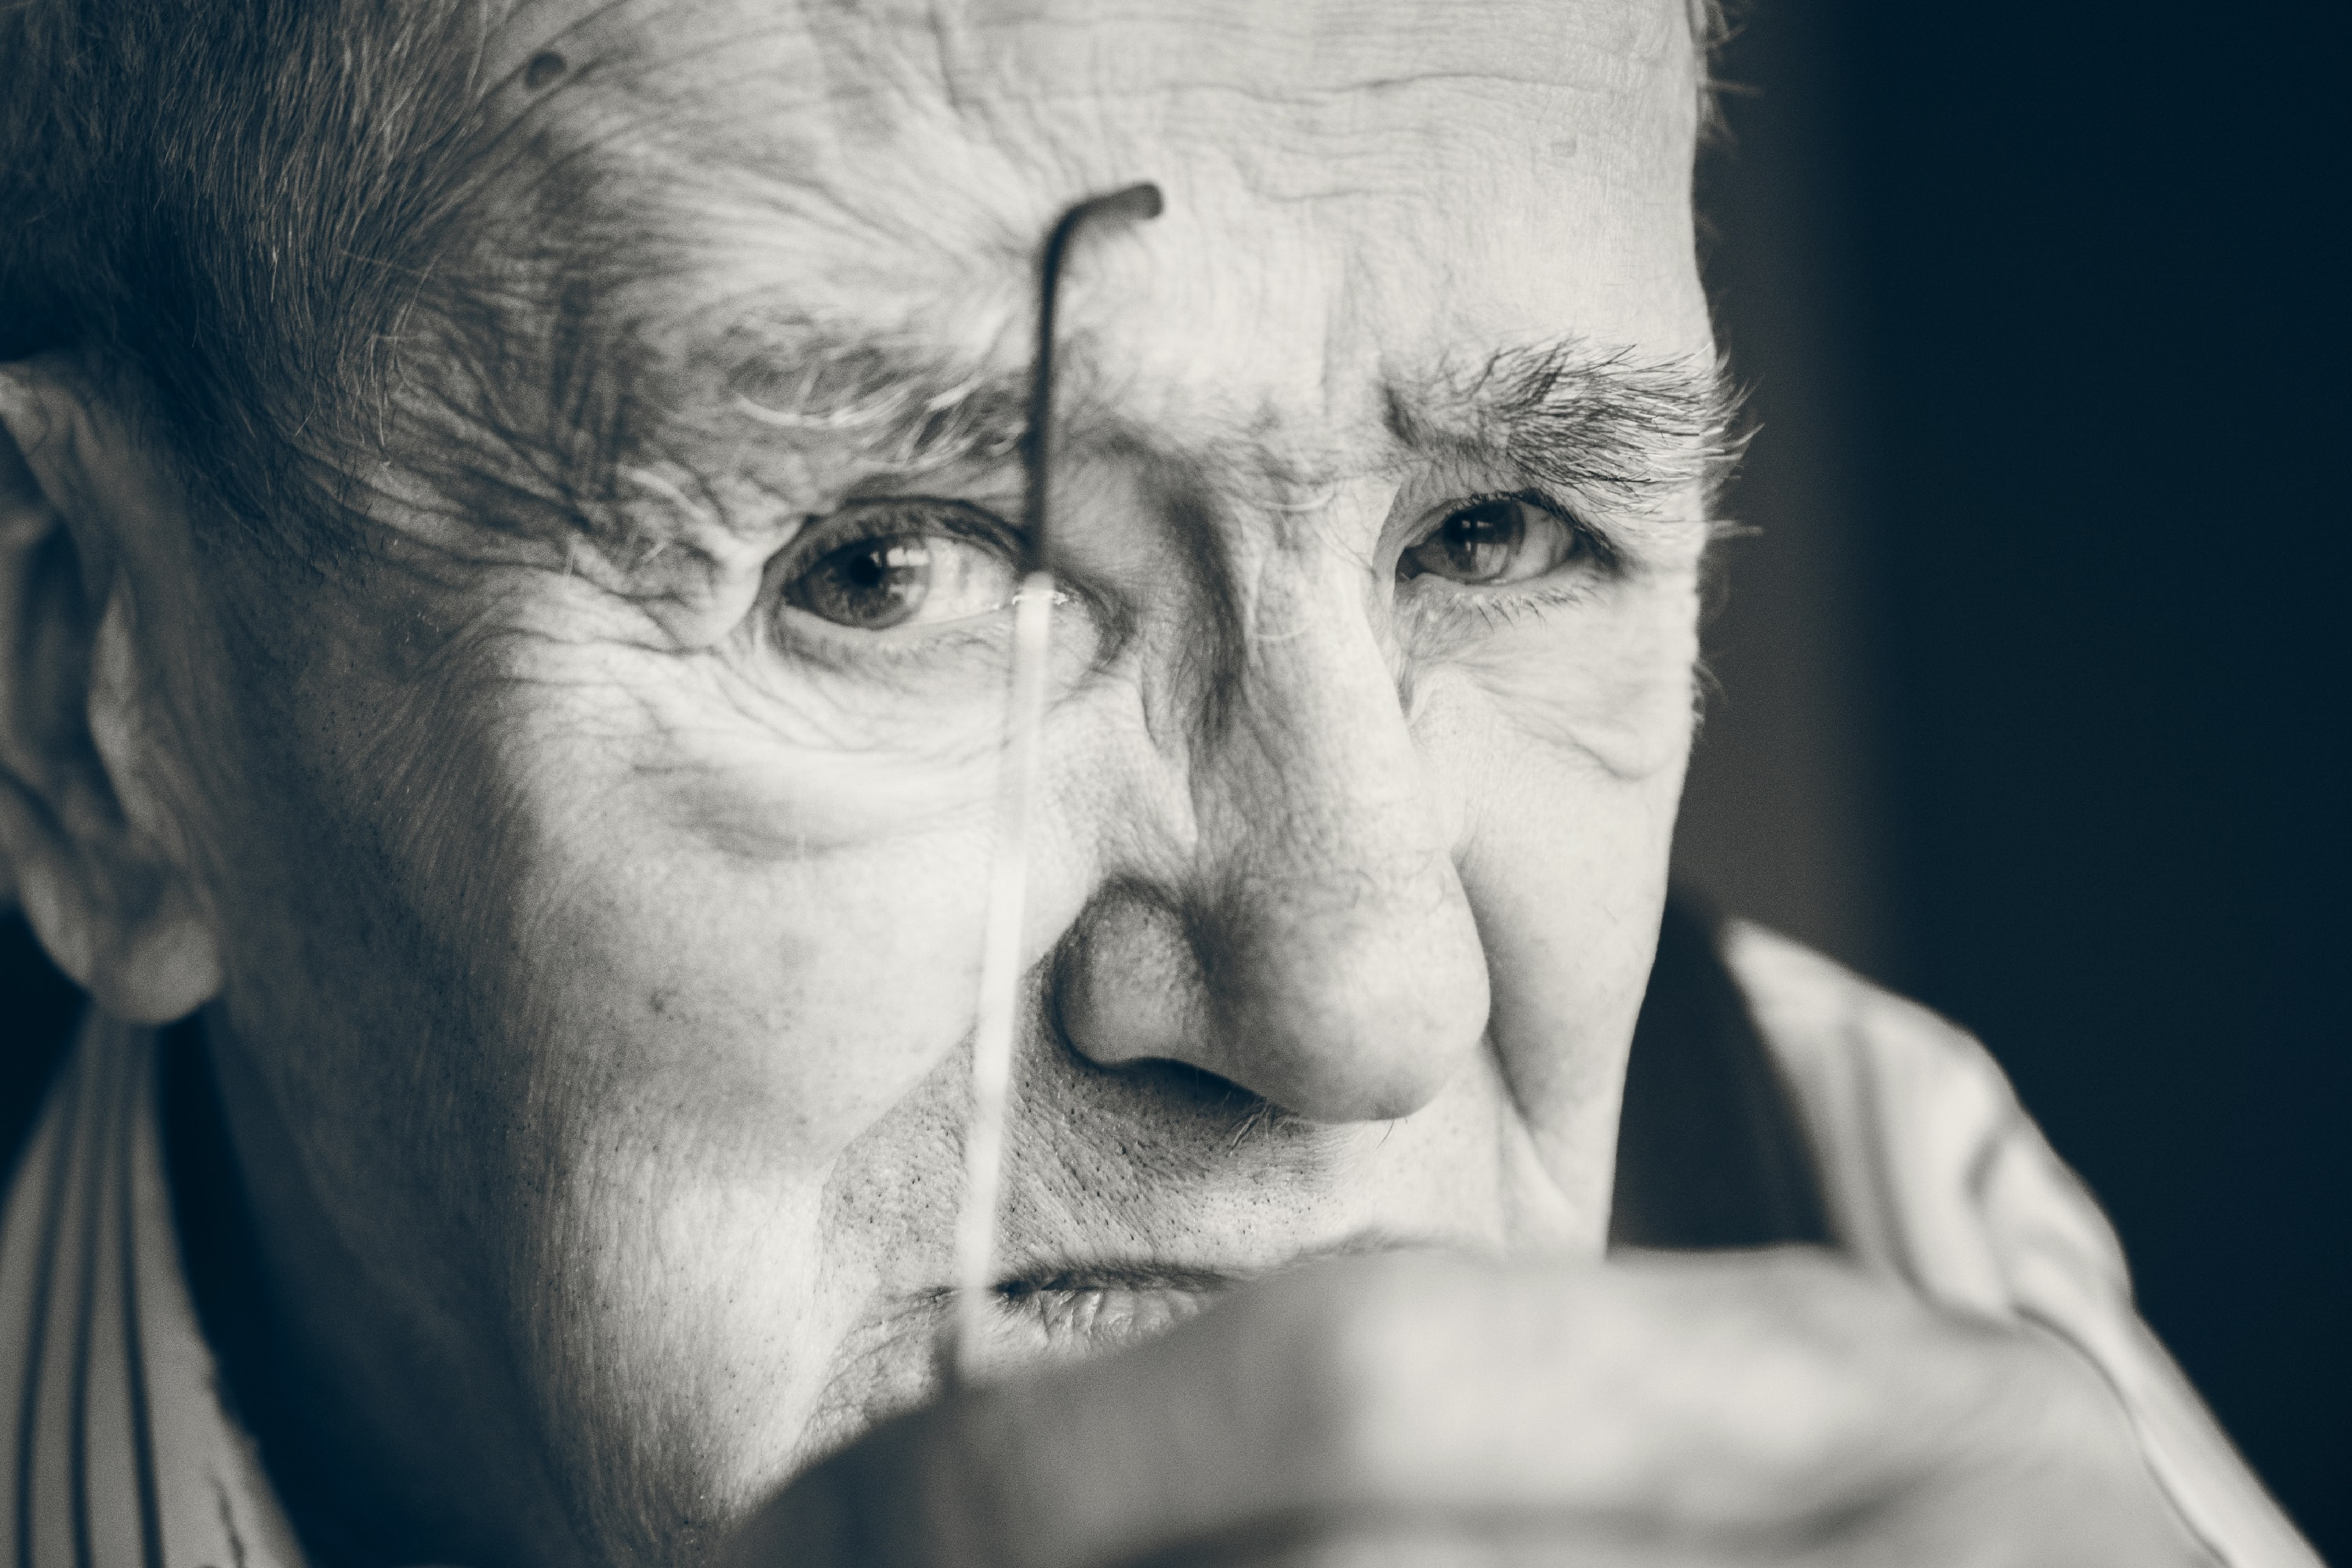 Black and white close up of serious old man with wrinkles removing glasses in Tournai